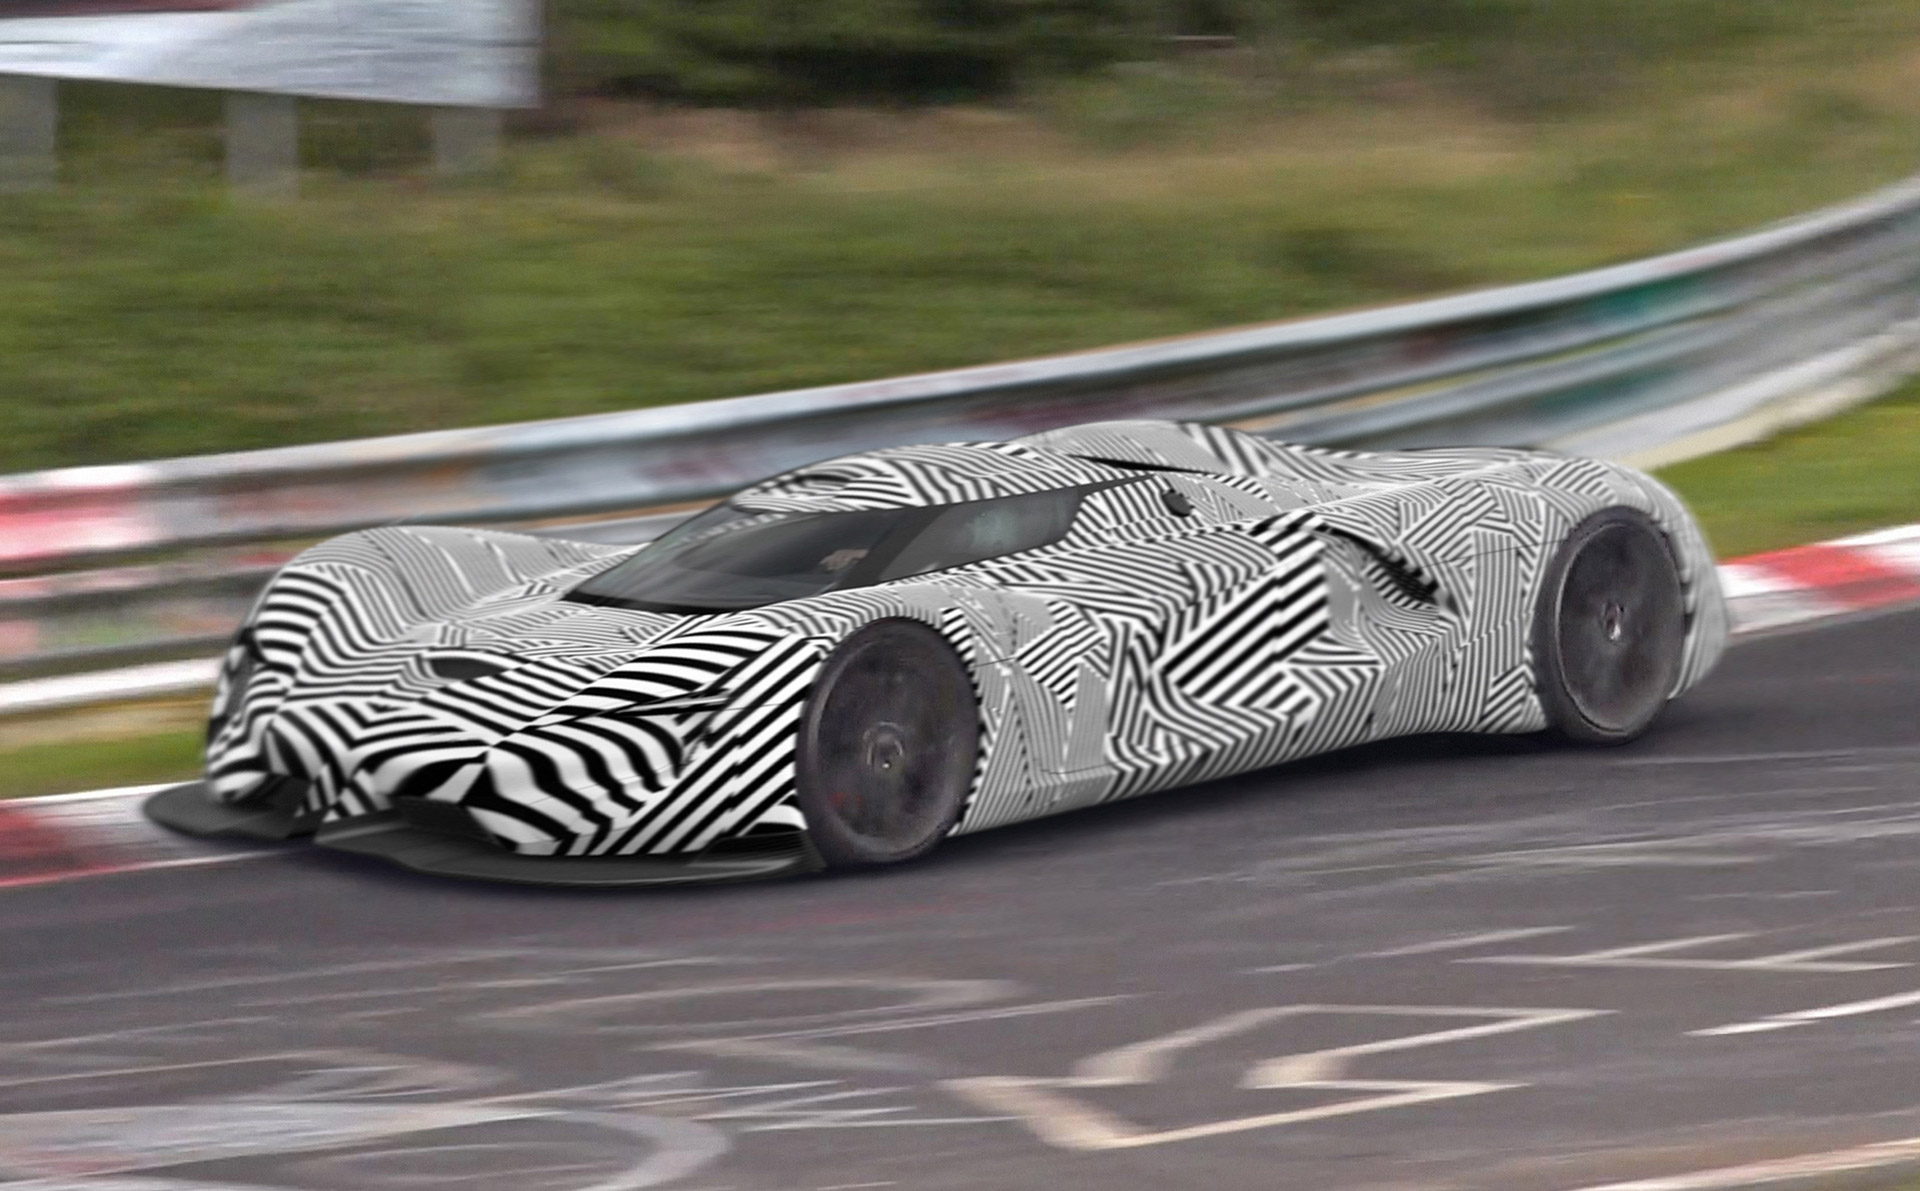 Srt Tomahawk Vision Gran Turismo Teased Again Ahead Of